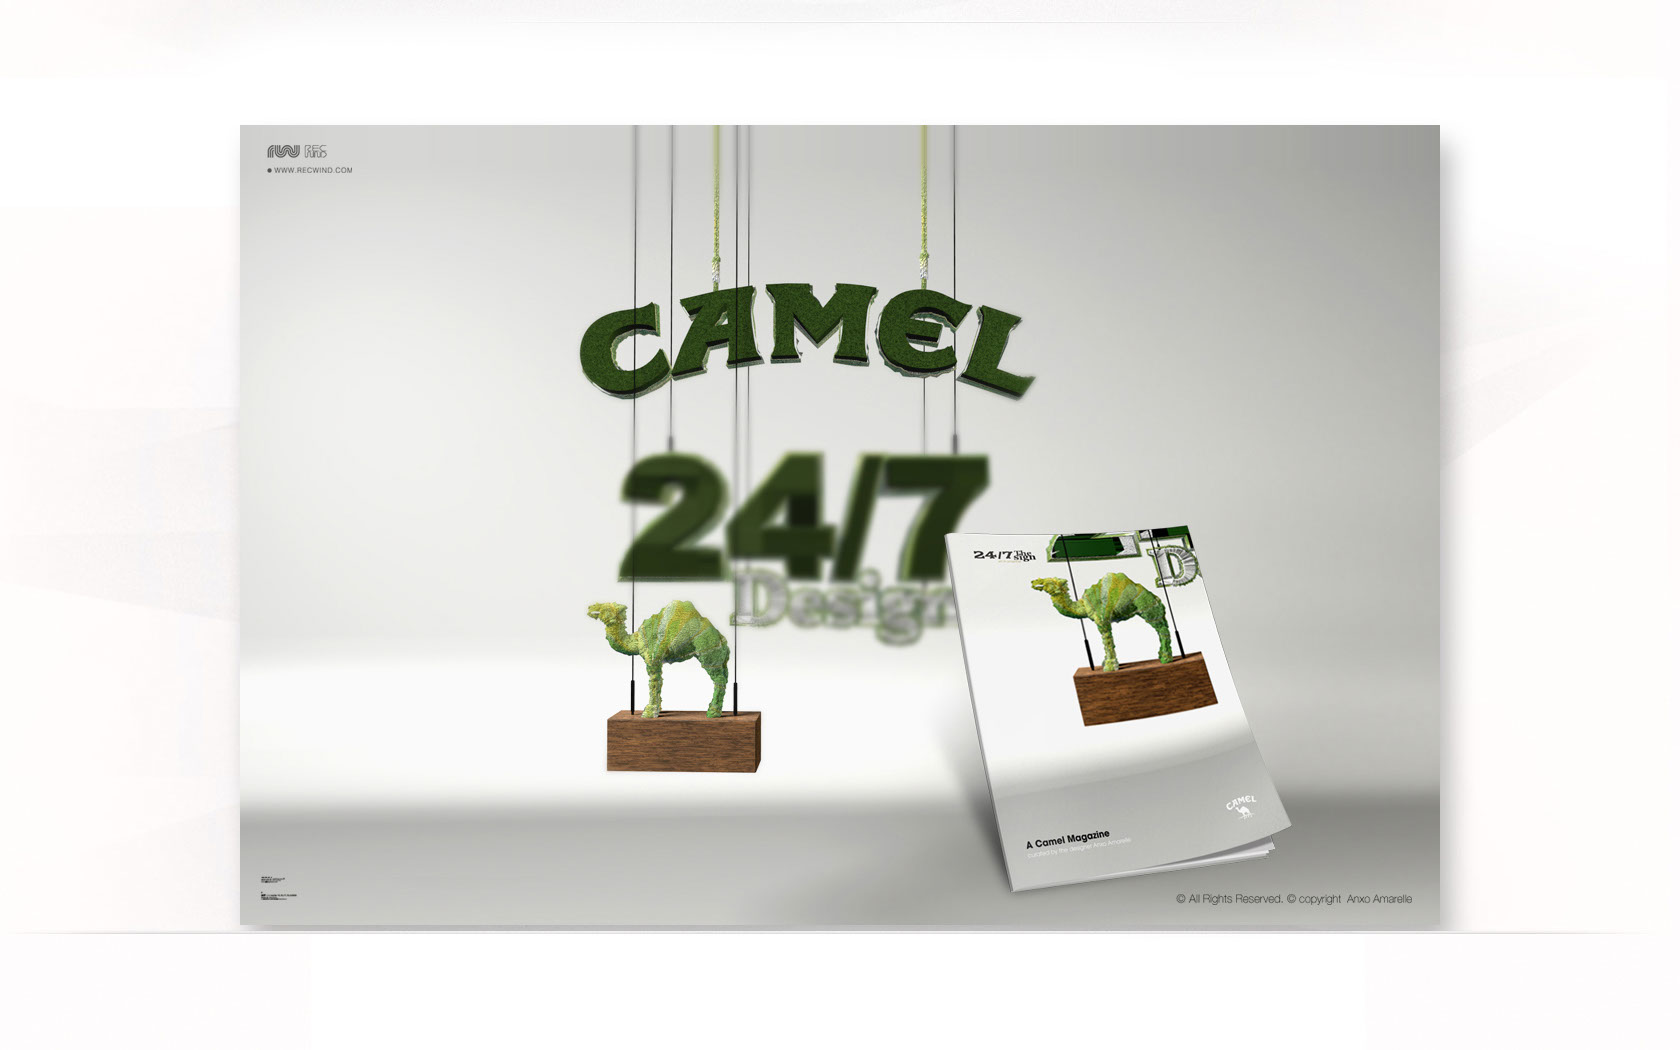 Graphics-logos-lettering-Camel 247-Anxo Amarelle